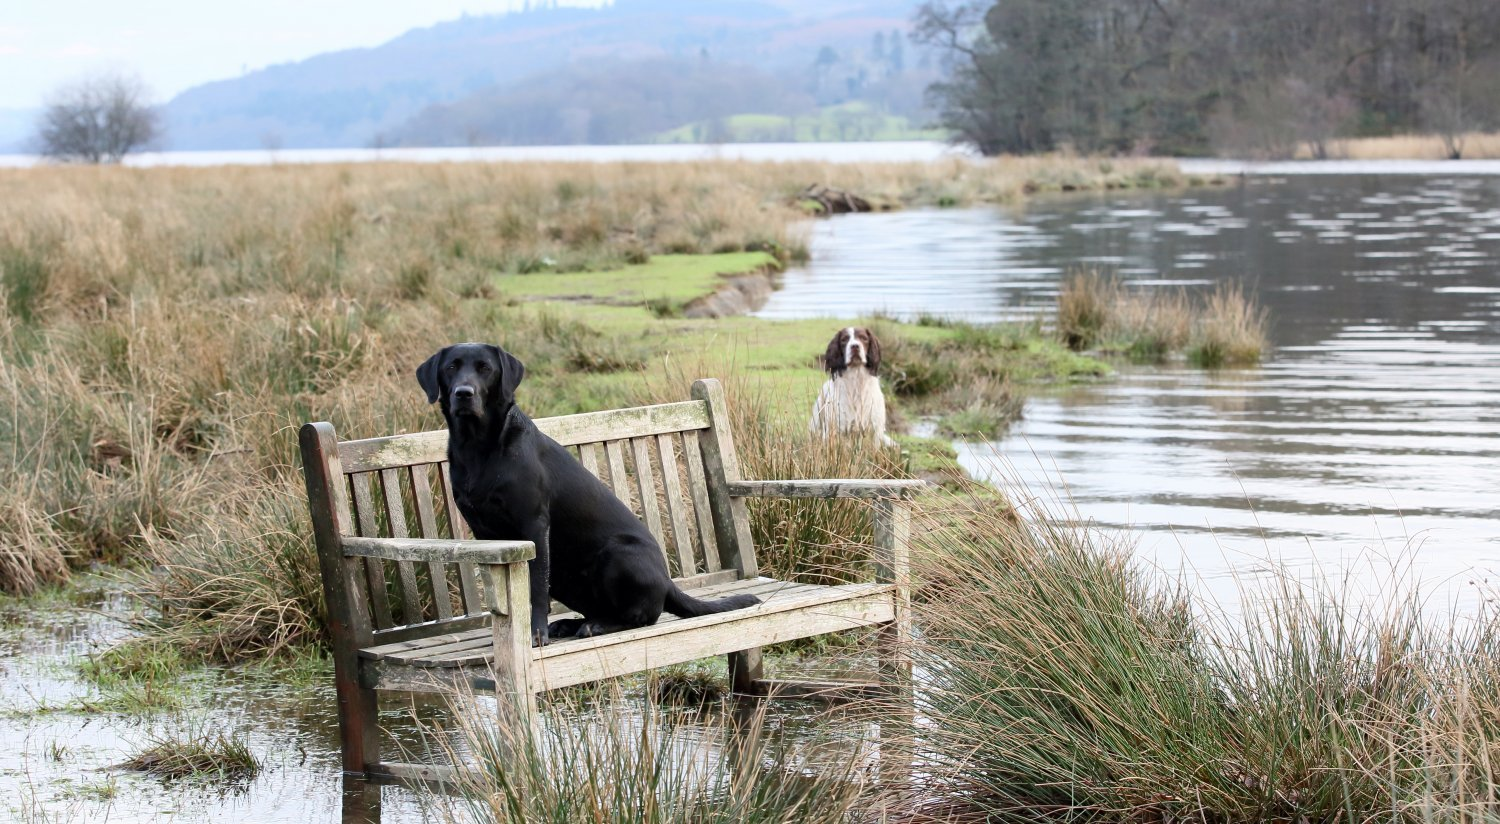 Dogs are welcome at Rothay Manor